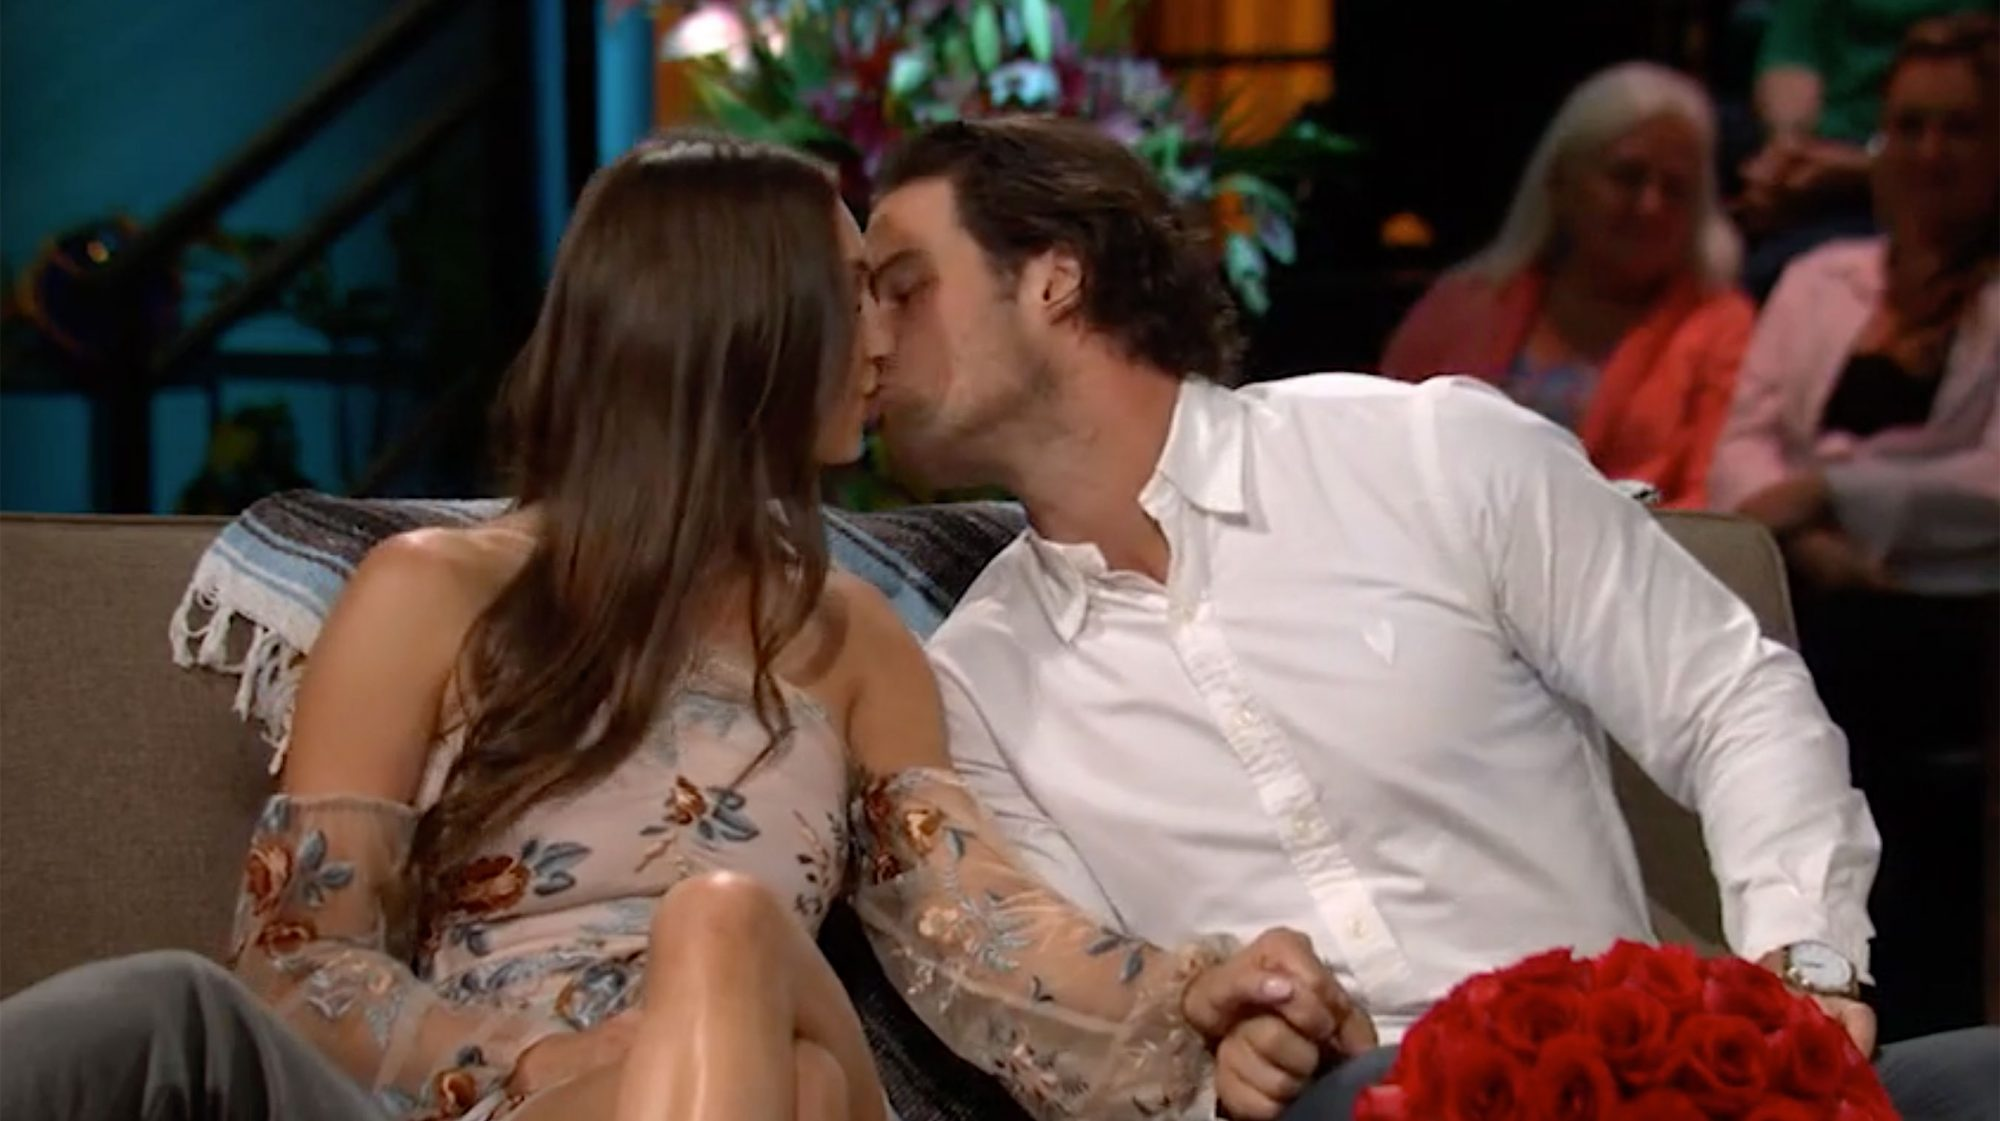 Bachelor in Paradise recapCredit: ABC